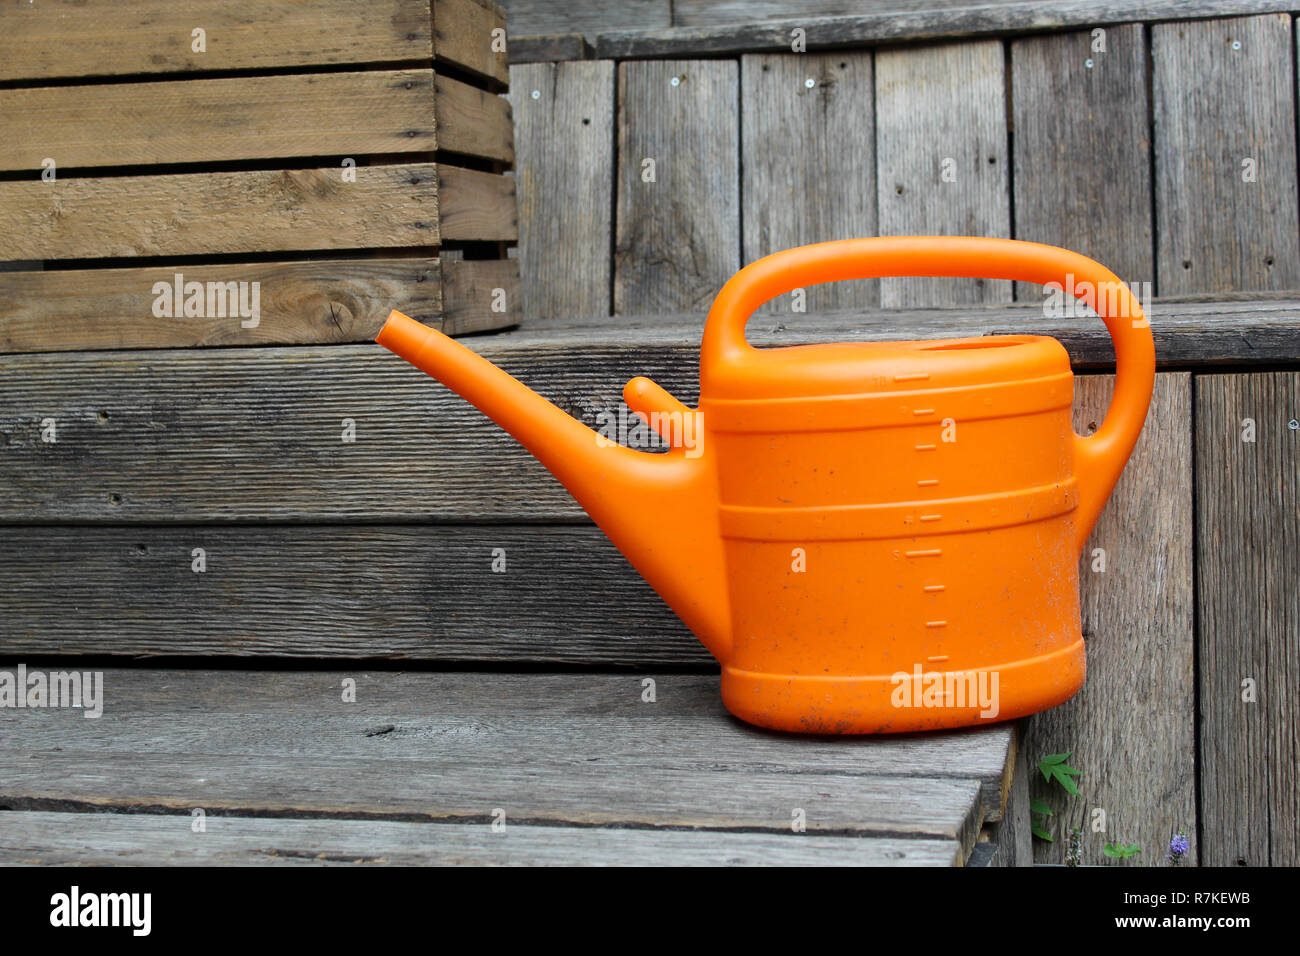 Orange watering can on wooden benches Stock Photo